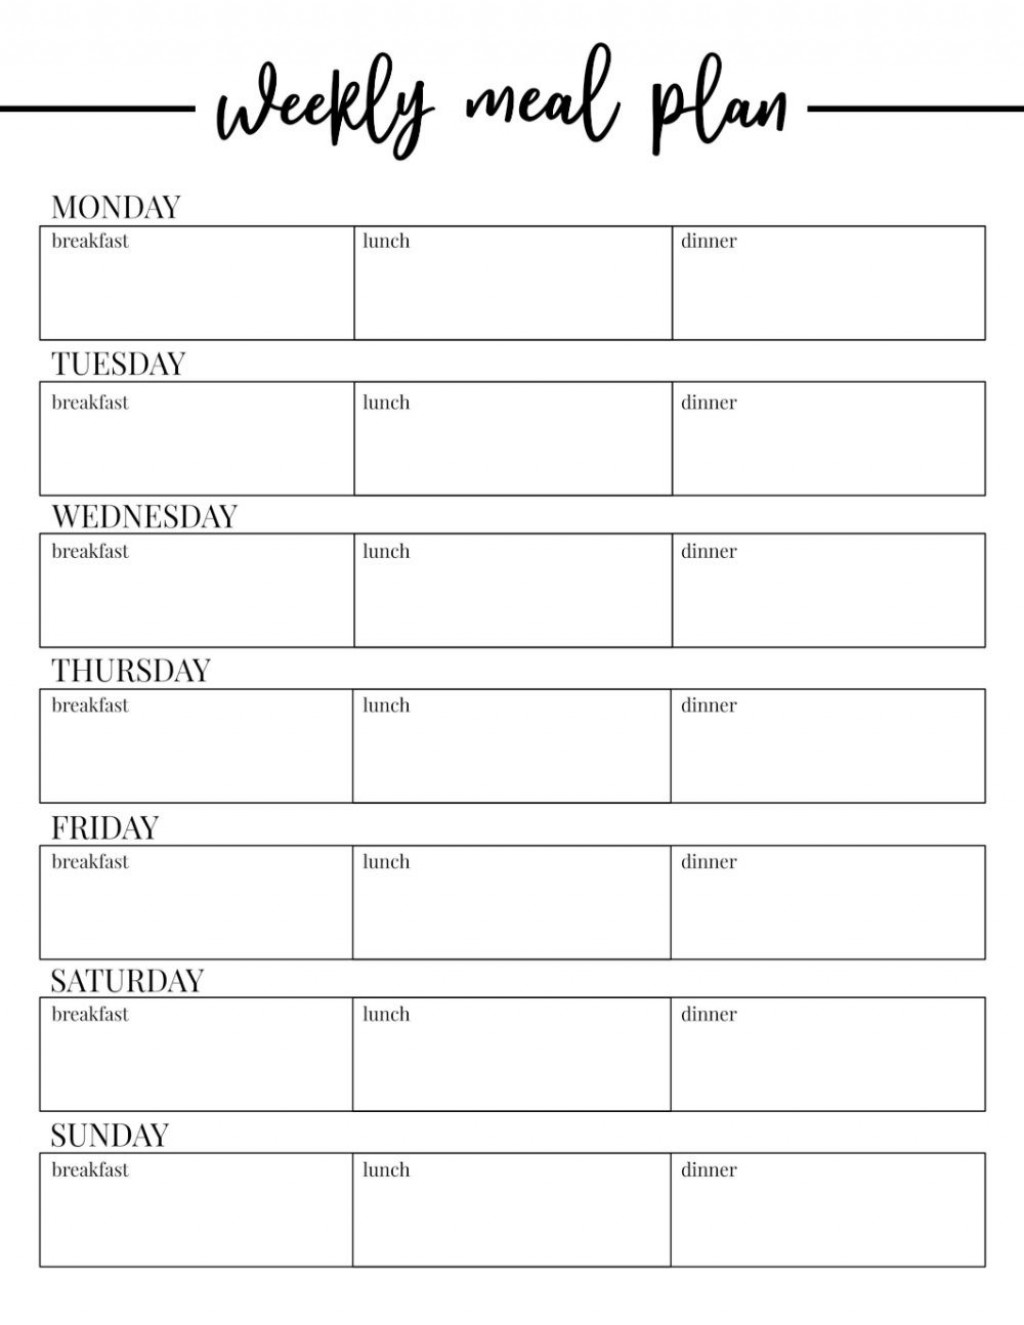 002 Astounding Meal Plan Calendar Template Highest Quality  Excel Weekly 30 DayLarge